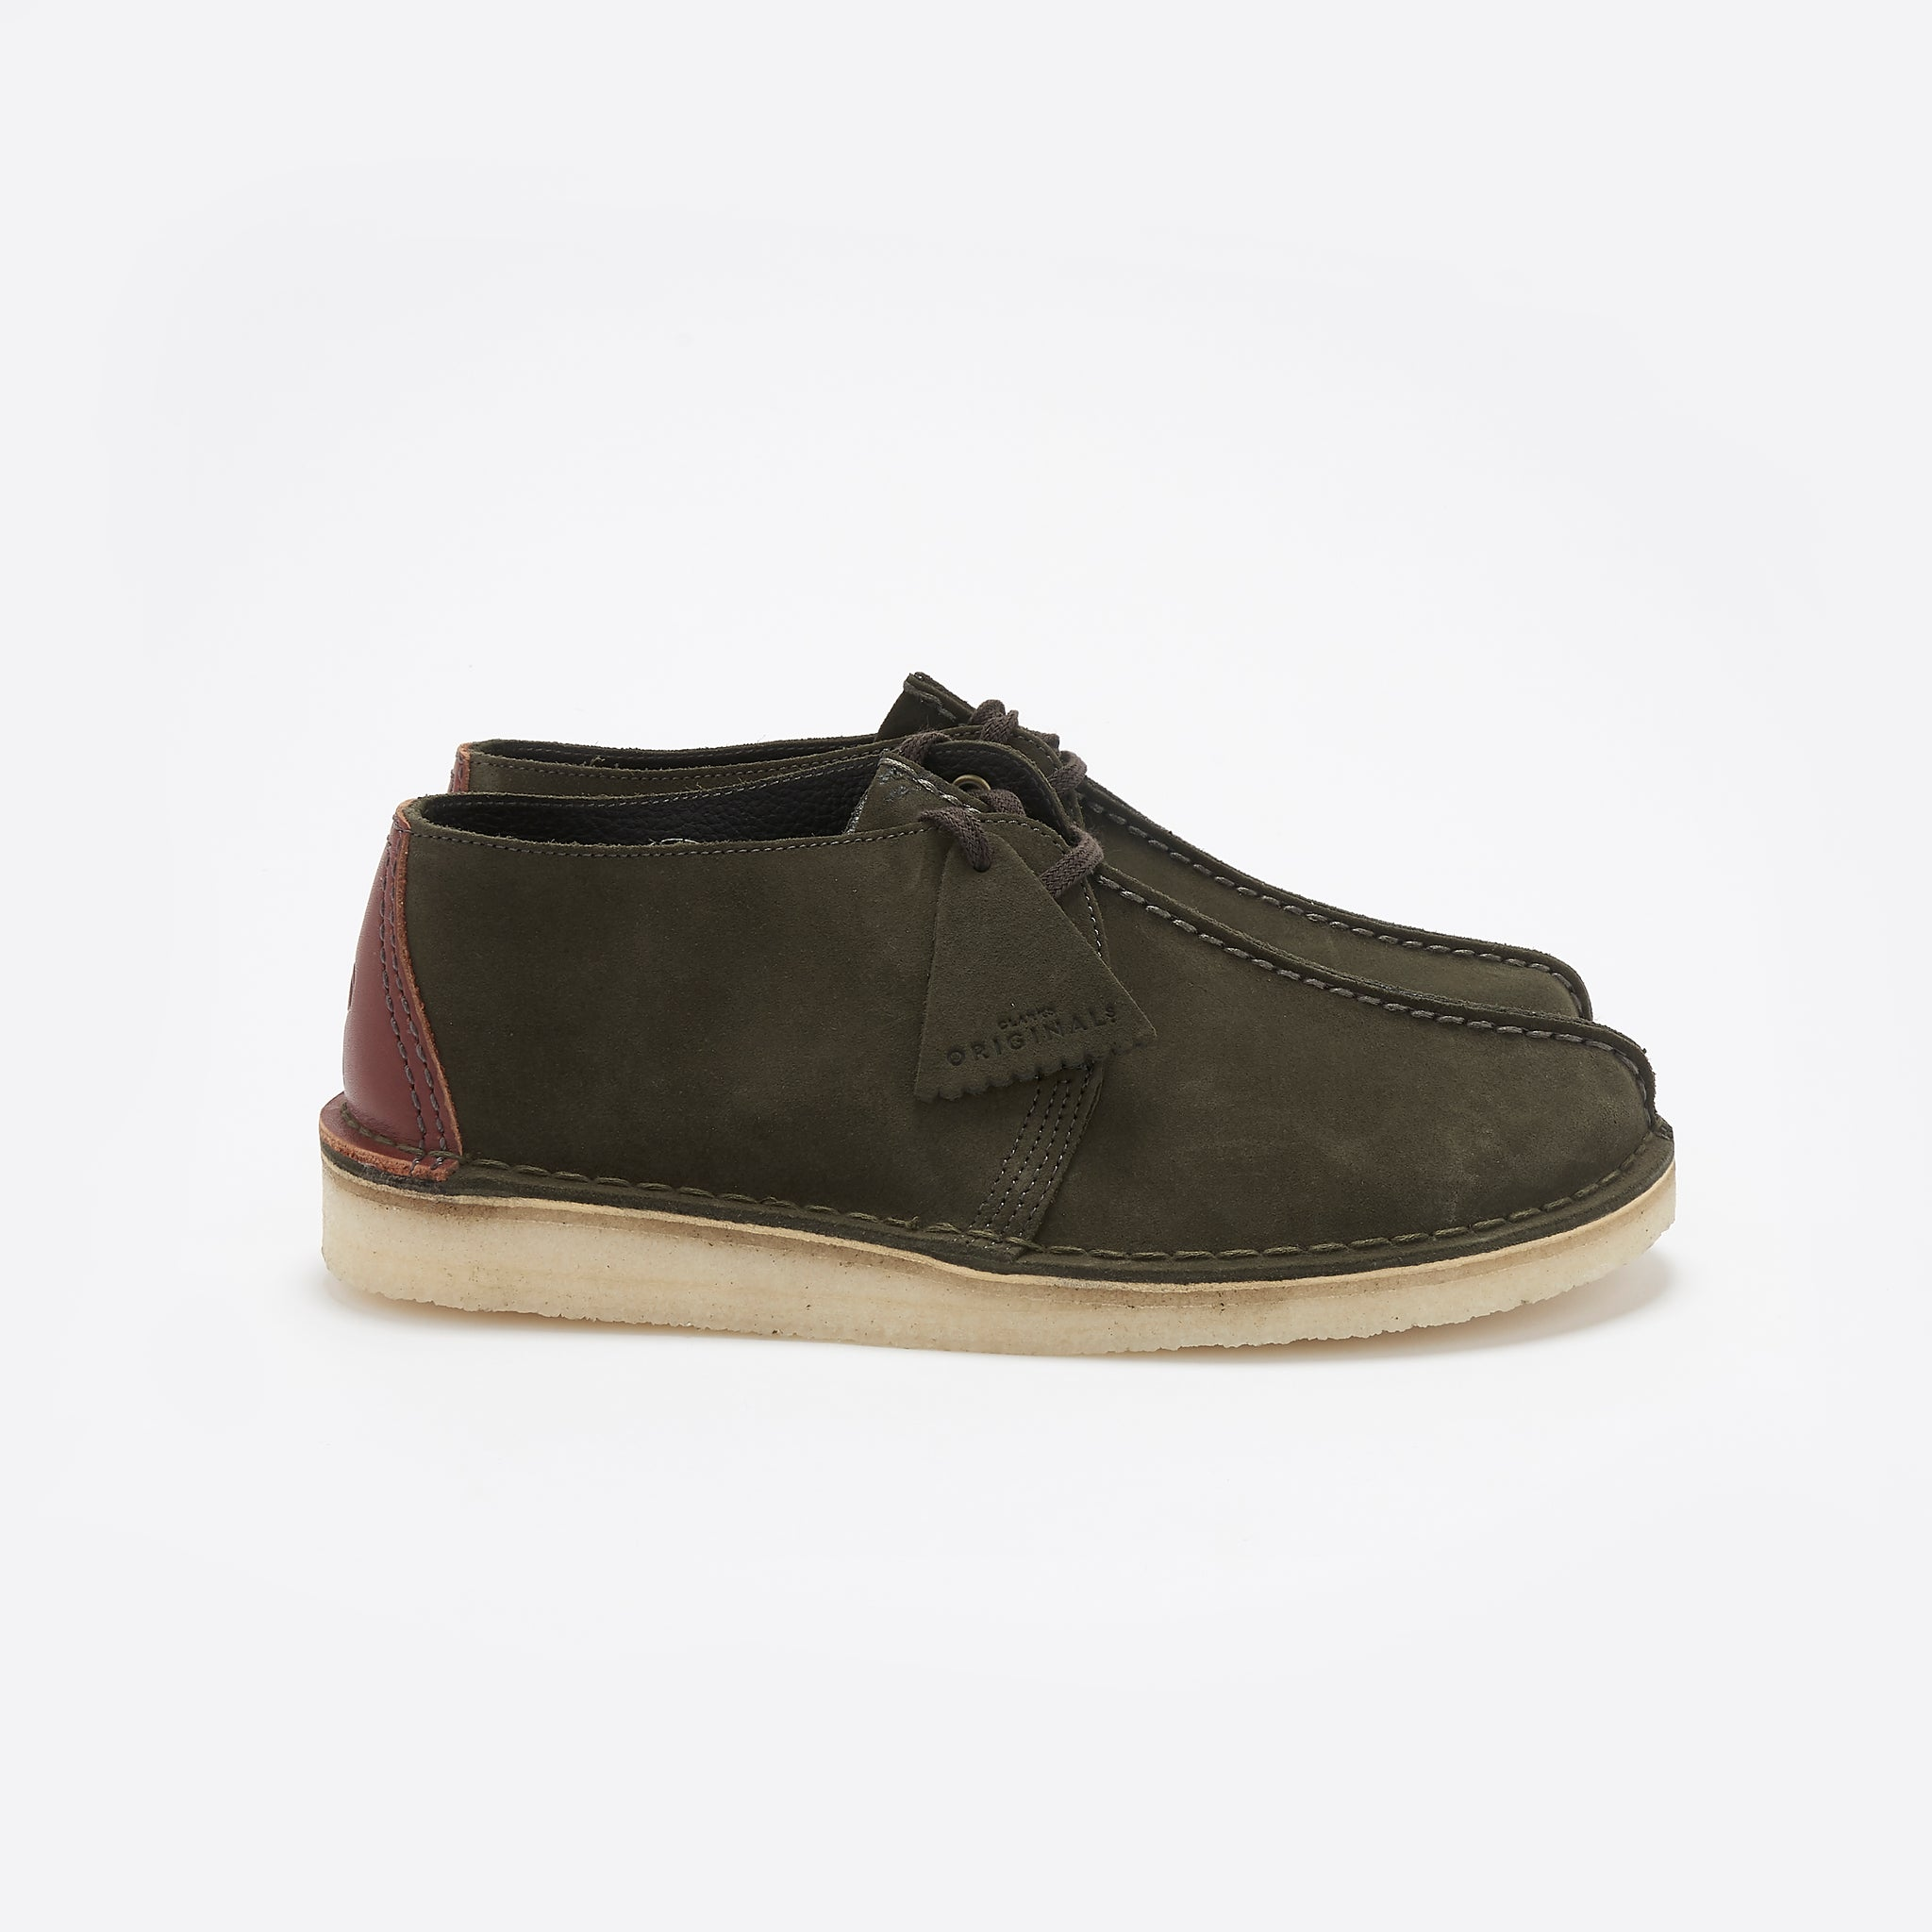 Clarks Originals Desert Trek in Dark Green Suede